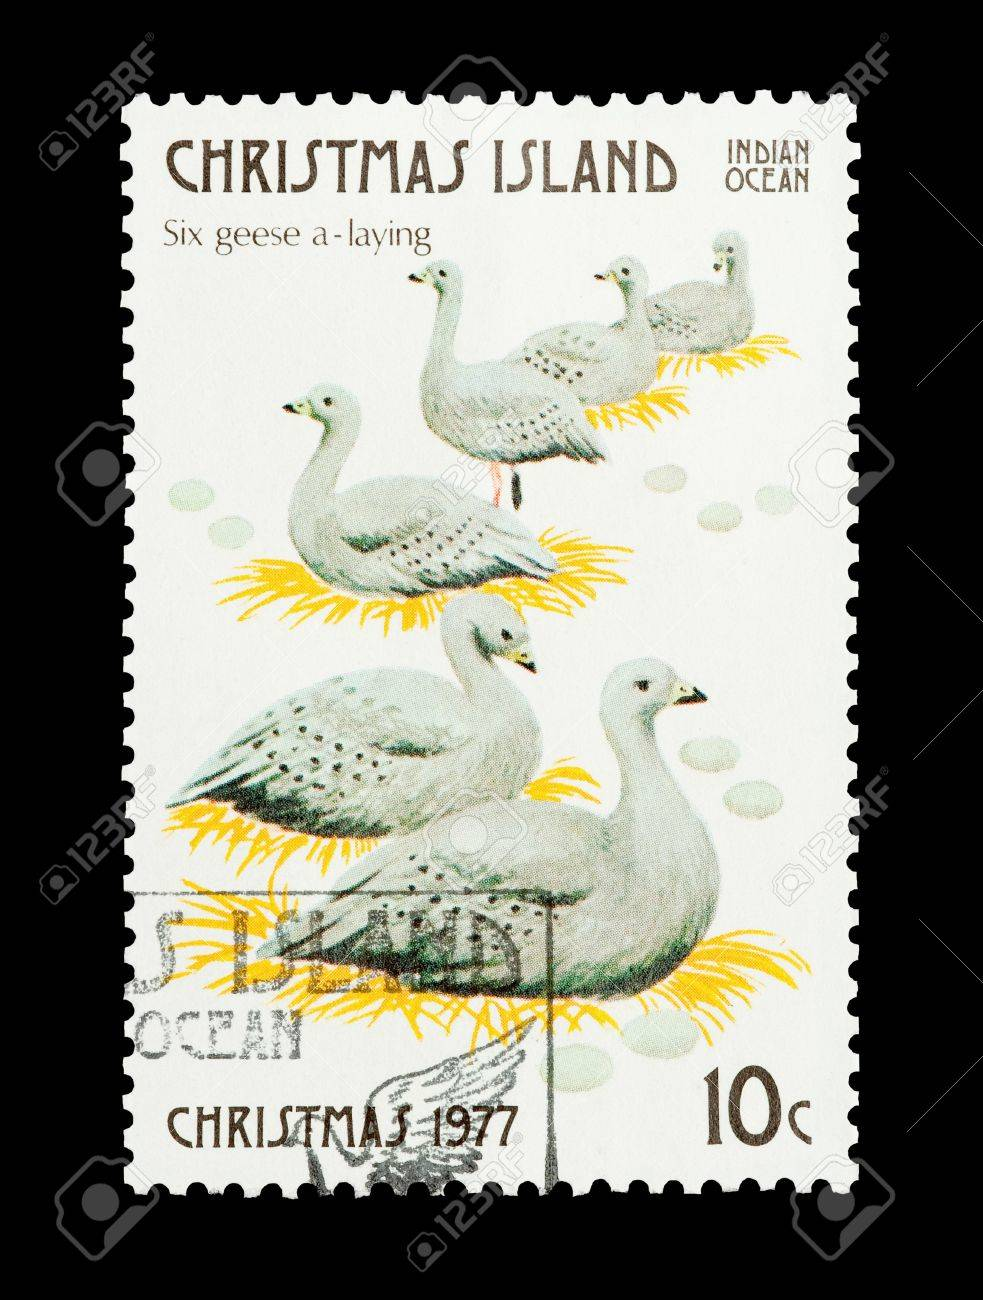 Christmas Island mail stamp featuring the sixth gift from the Twelve Days of Christmas Stock Photo - 8702733